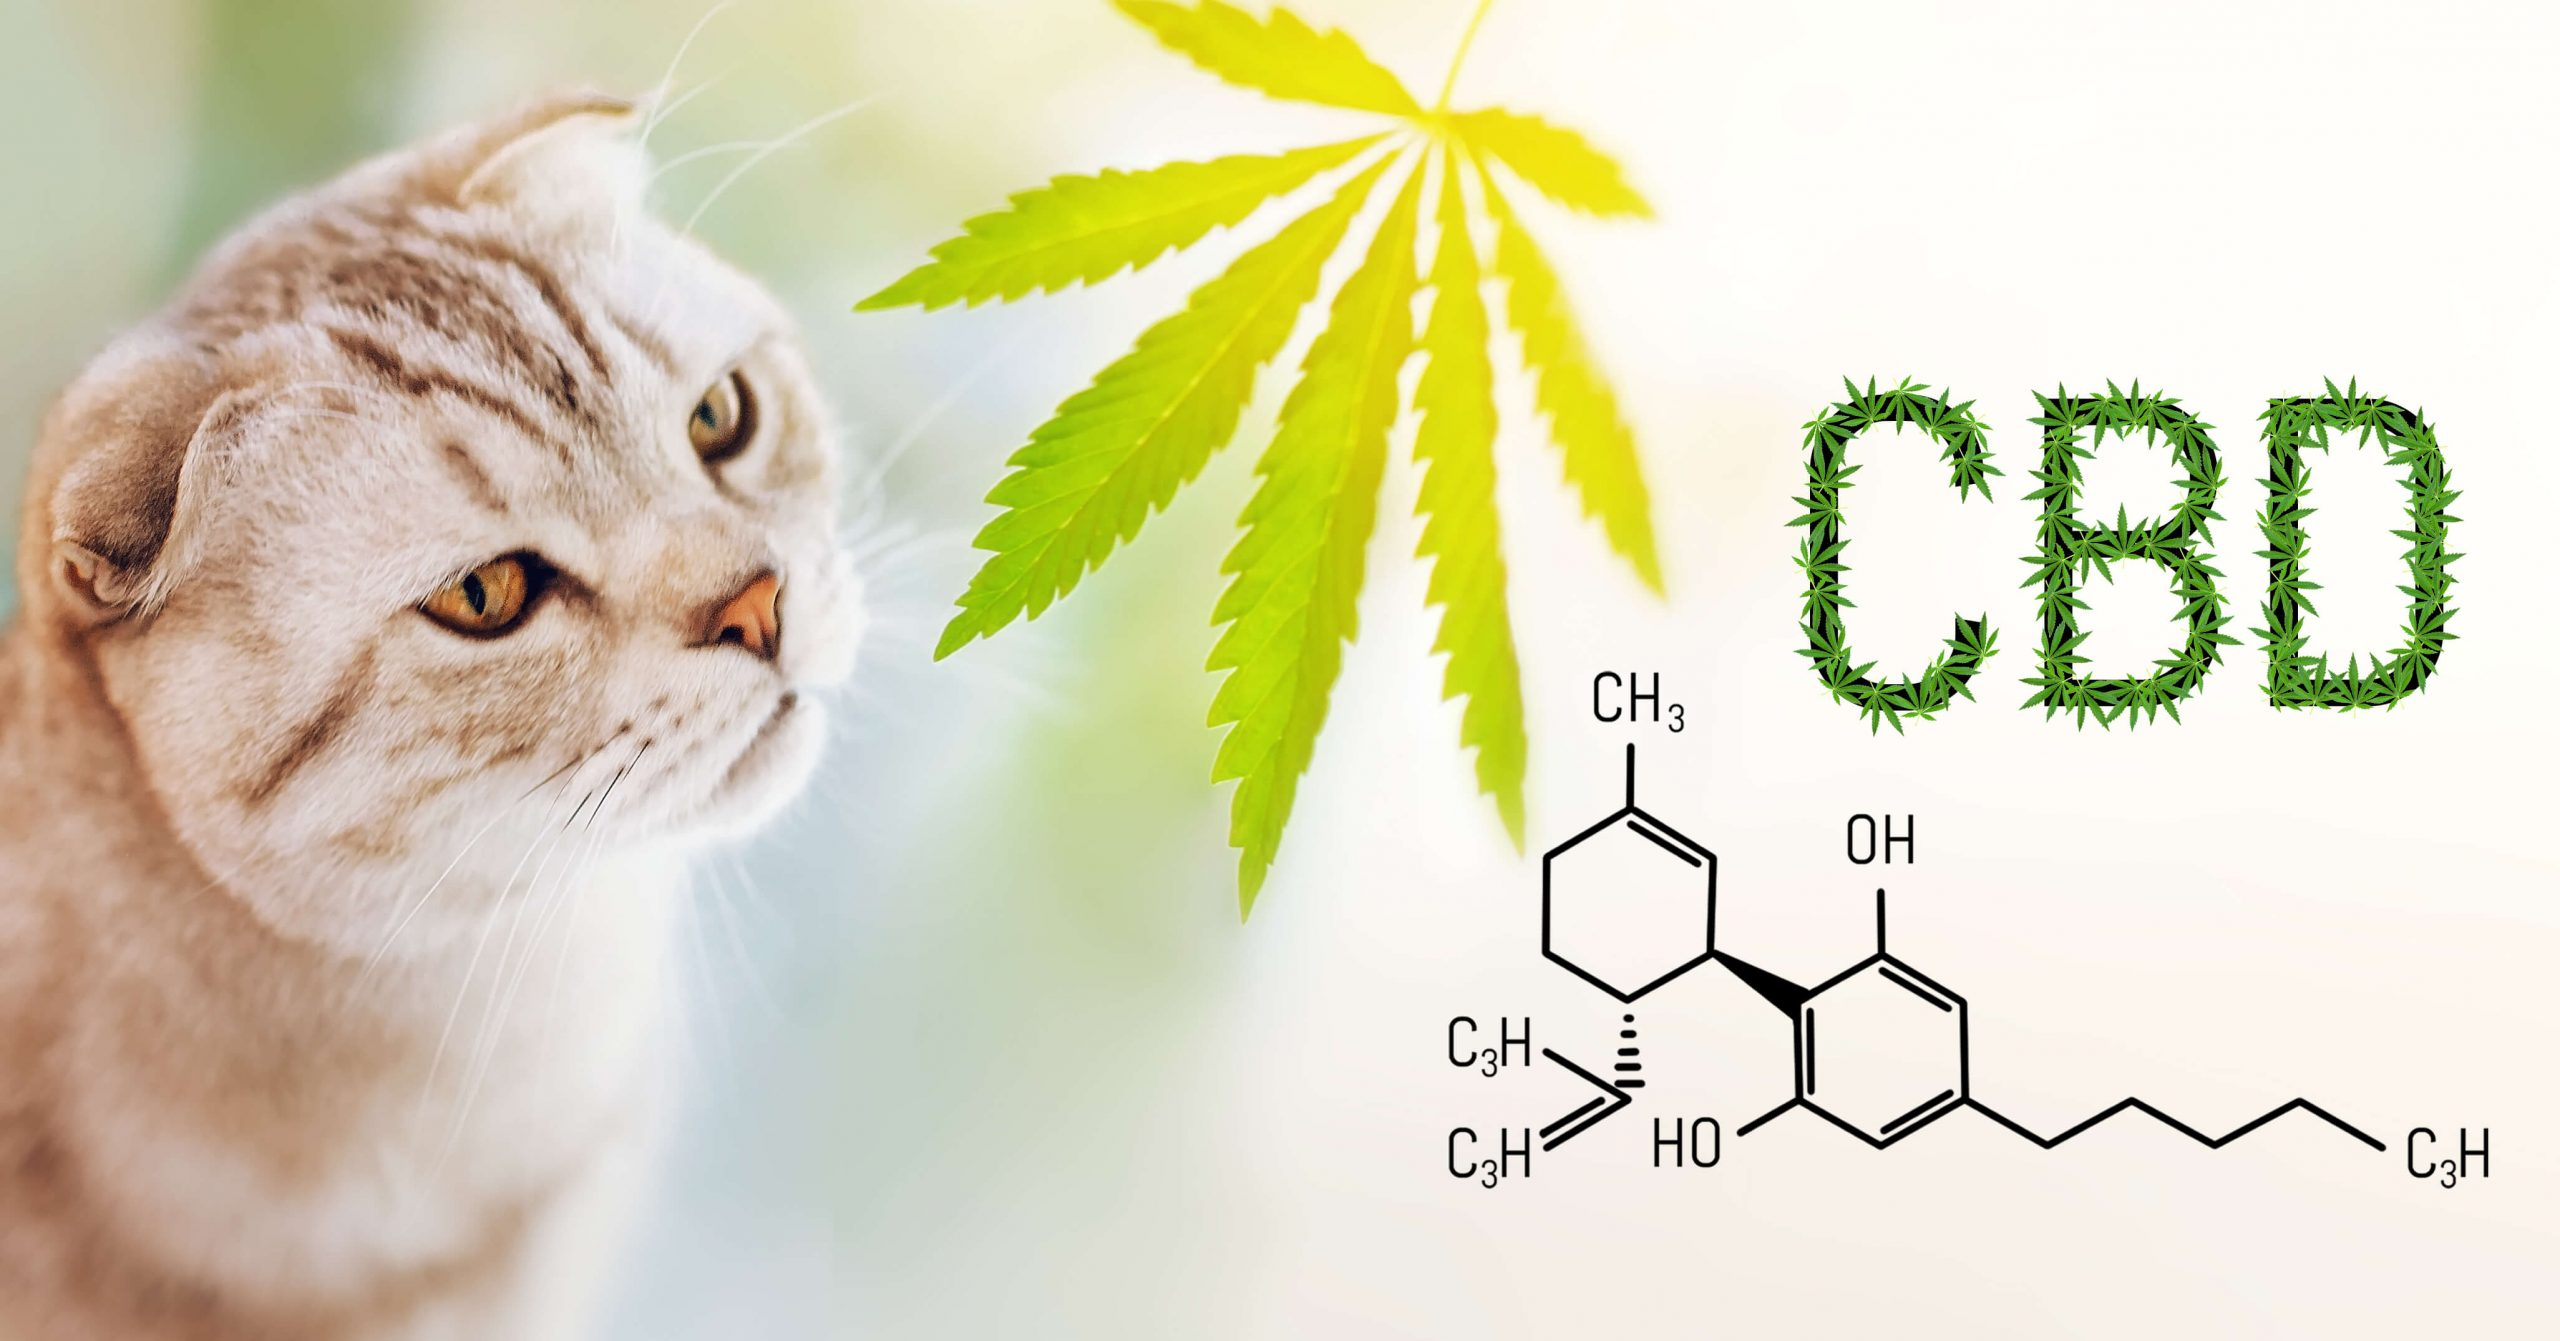 Is-cbd-oil-safe-for-cats-2